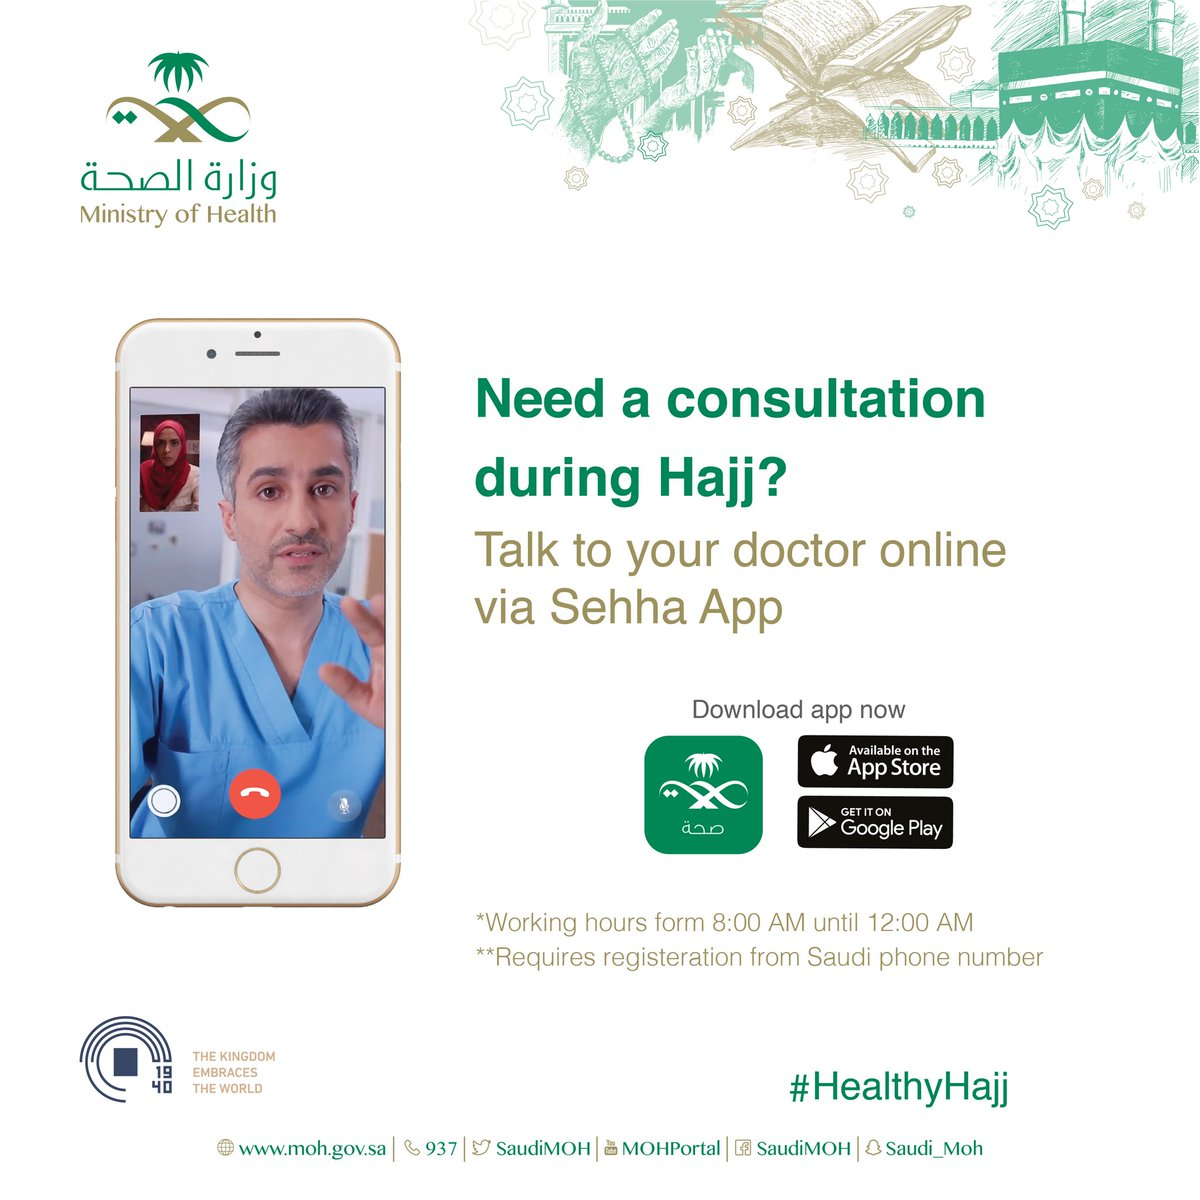 Need a medical consultation? download #Sehha app and talk to